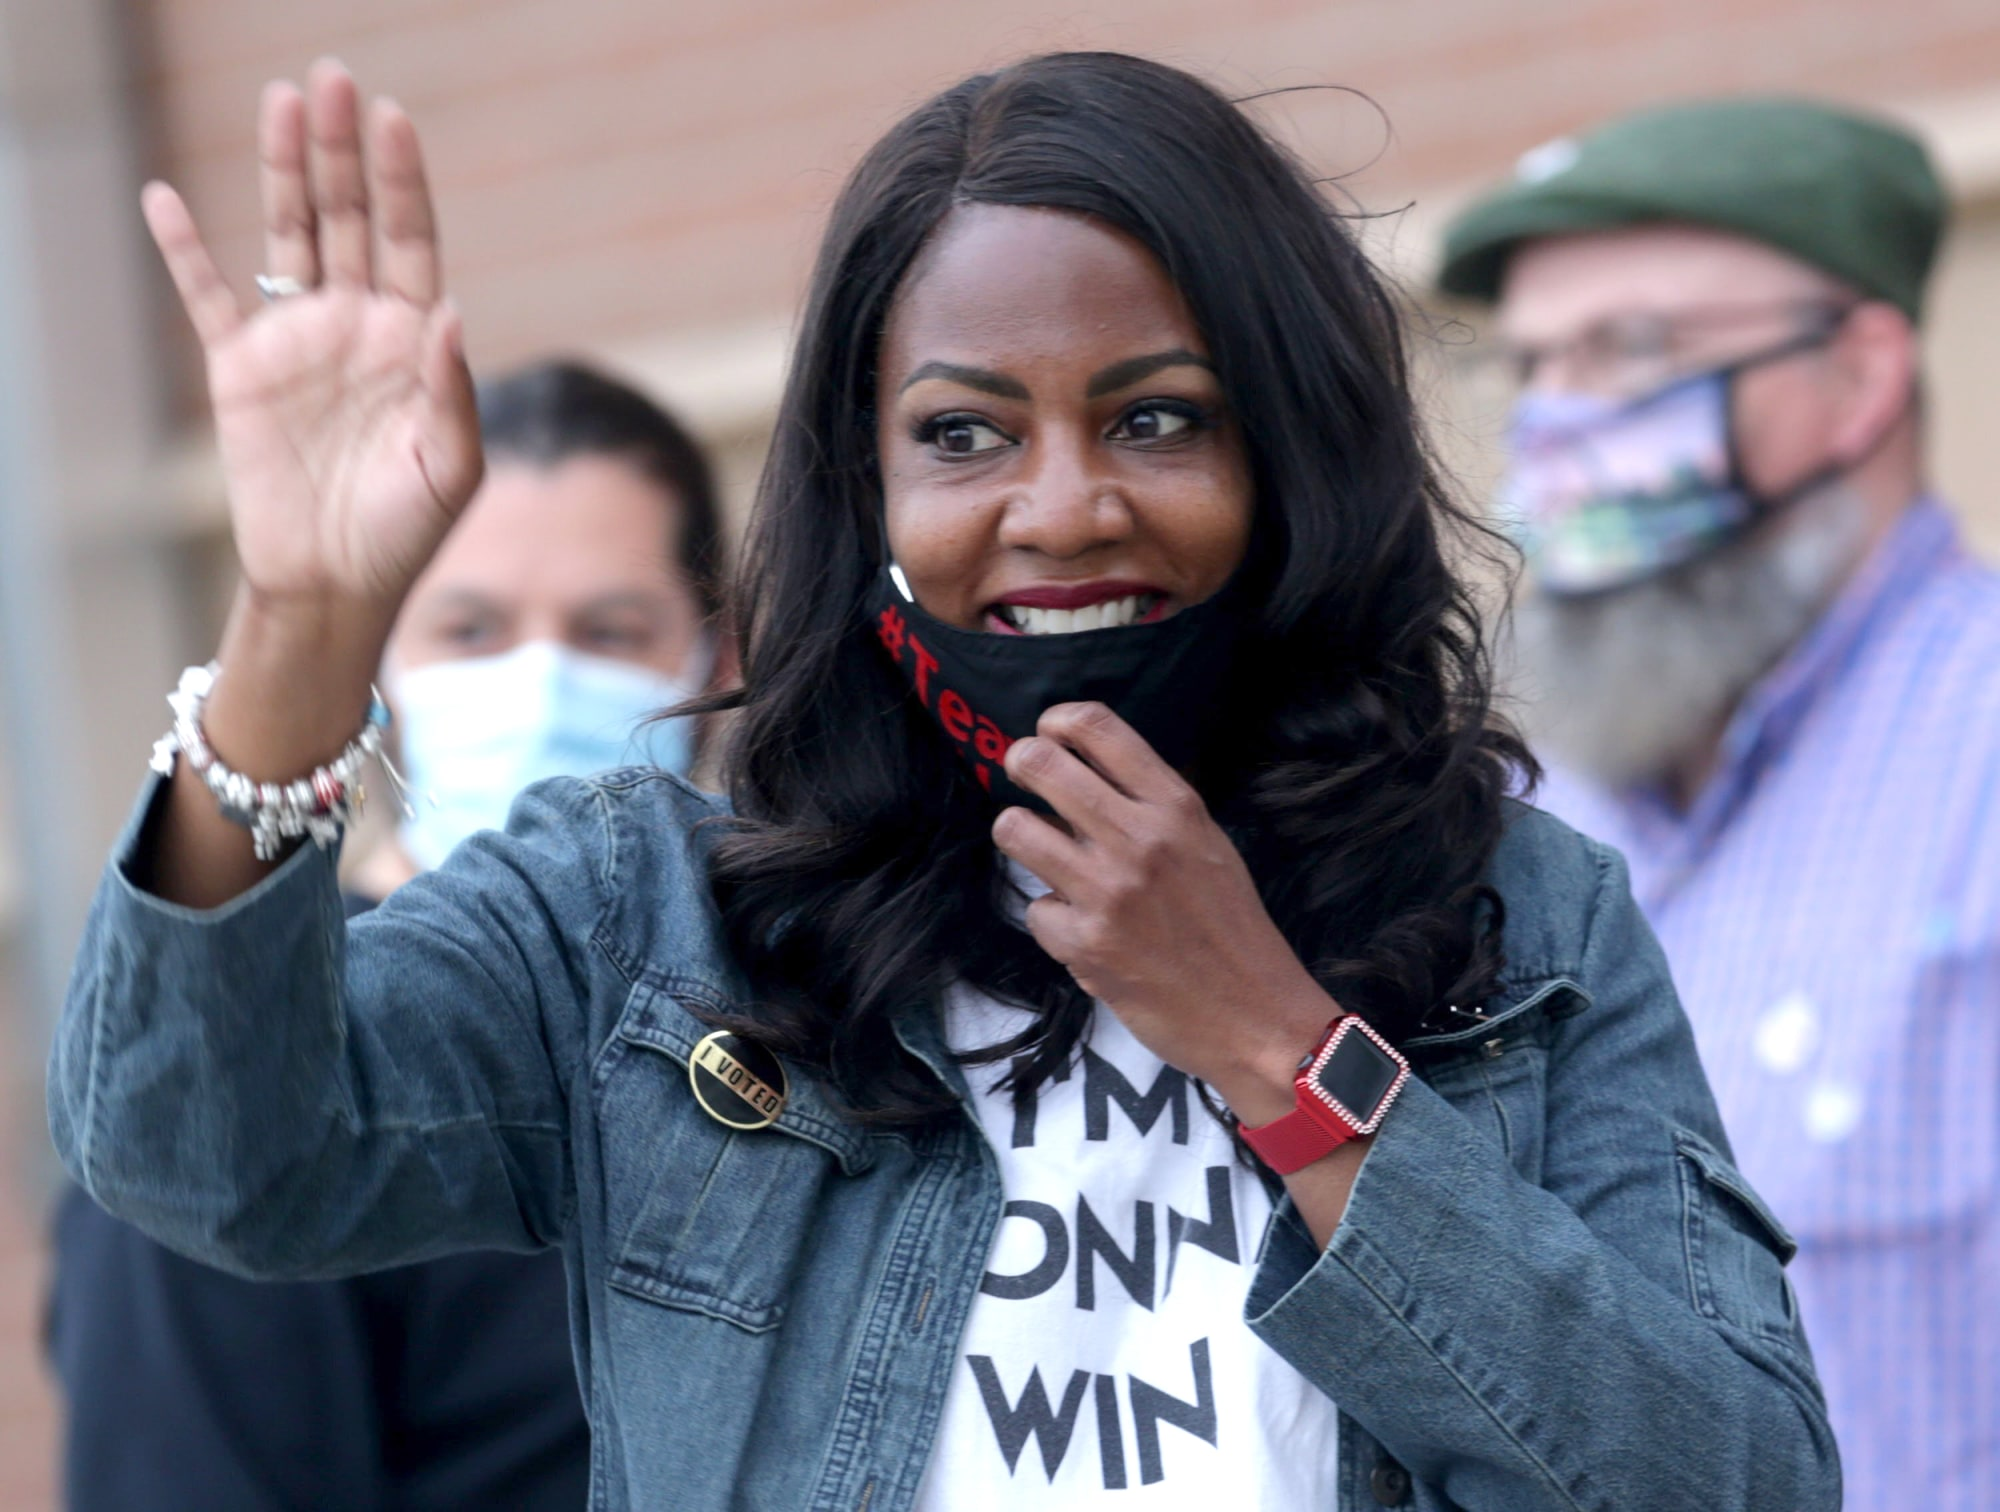 """St. Louis, MissouriST. LOUIS — St. Louis Treasurer Tishaura Jones, who has been outspoken in her criticism of the criminal justice system's """"arrest and incarcerate"""" model, won election Tuesday and will take over as the first Black female mayor in a city beset by yet another wave of violent crime.  Jones defeated Alderwoman Cara Spencer in the general election with 51.7 percent to Spencer's 47.8 percent, based on unofficial results posted on the city's website. She will be sworn in April 20.  """"St. Louis: This is an opportunity for us to rise,"""" Jones said in her victory speech. """"I told you when I was running that we aren't done avoiding tough conversations. We are done ignoring the racism that has held our city and our region back."""" elects first Black female mayor"""